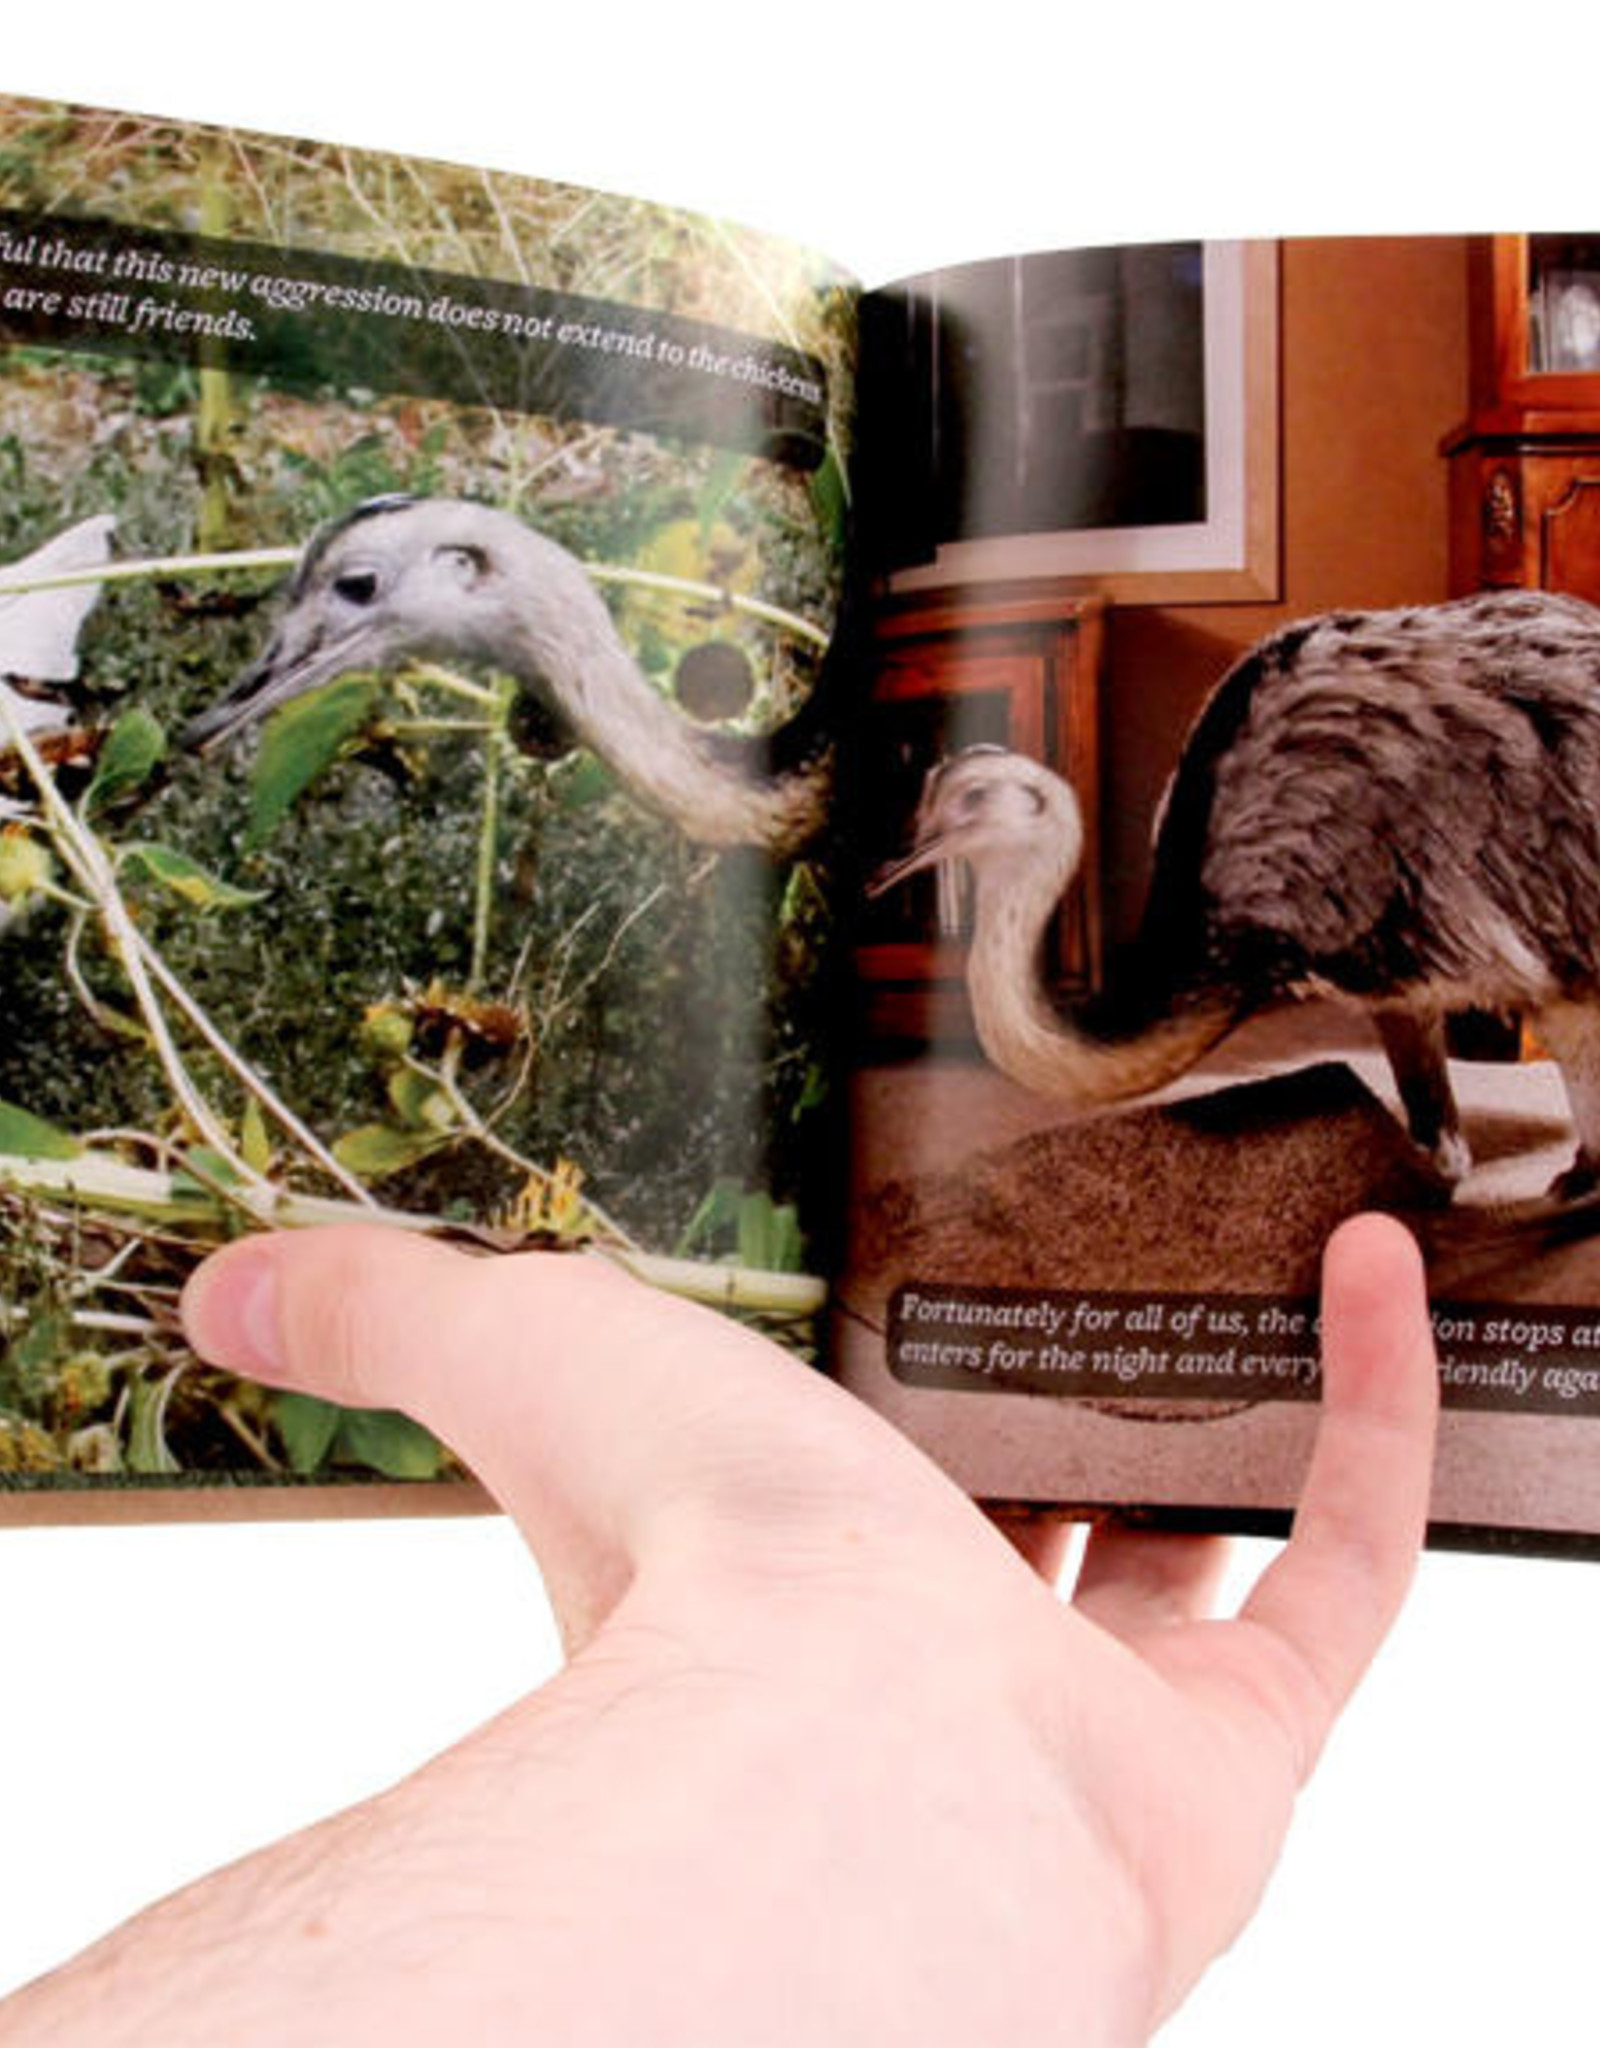 Amica's World - How A Giant Bird Came Into Our Heart and Home